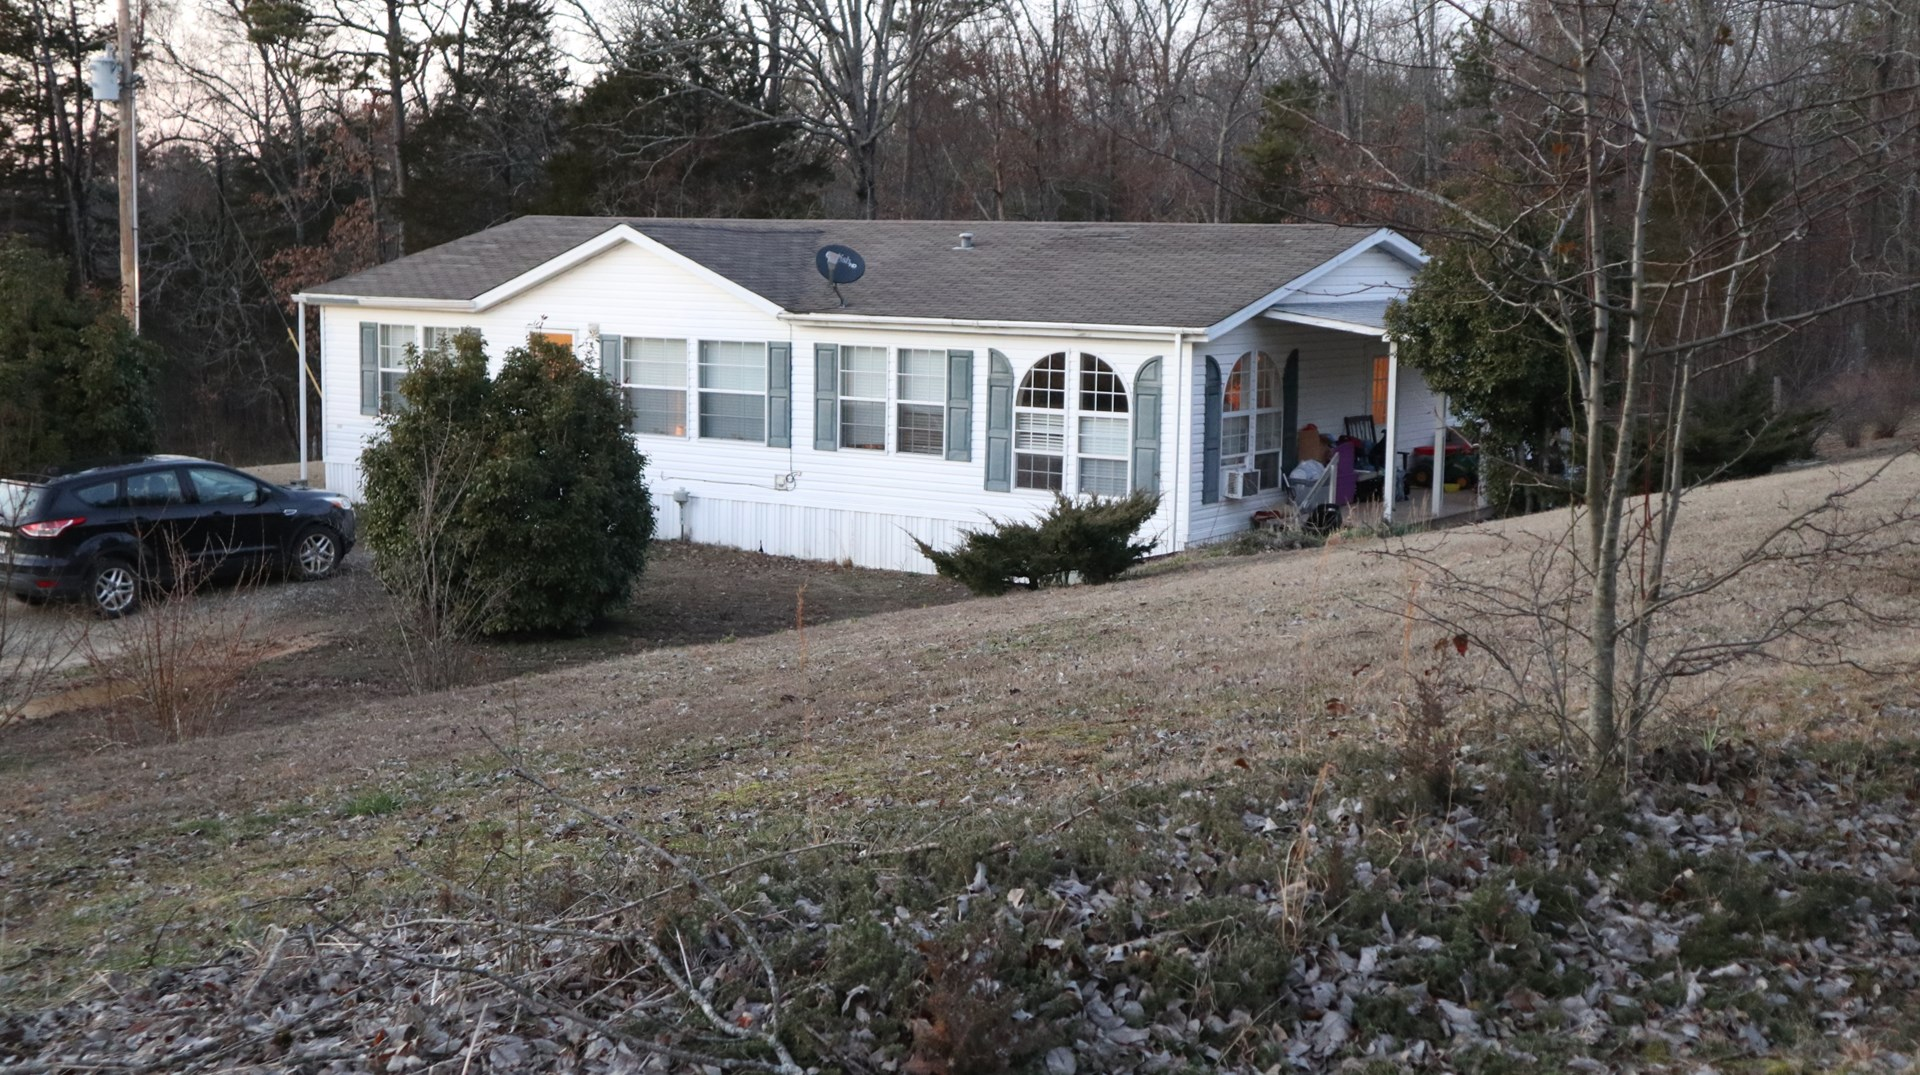 COUNTRY HOME IN THE FOOTHILLS OF THE OZARKS FOR SALE